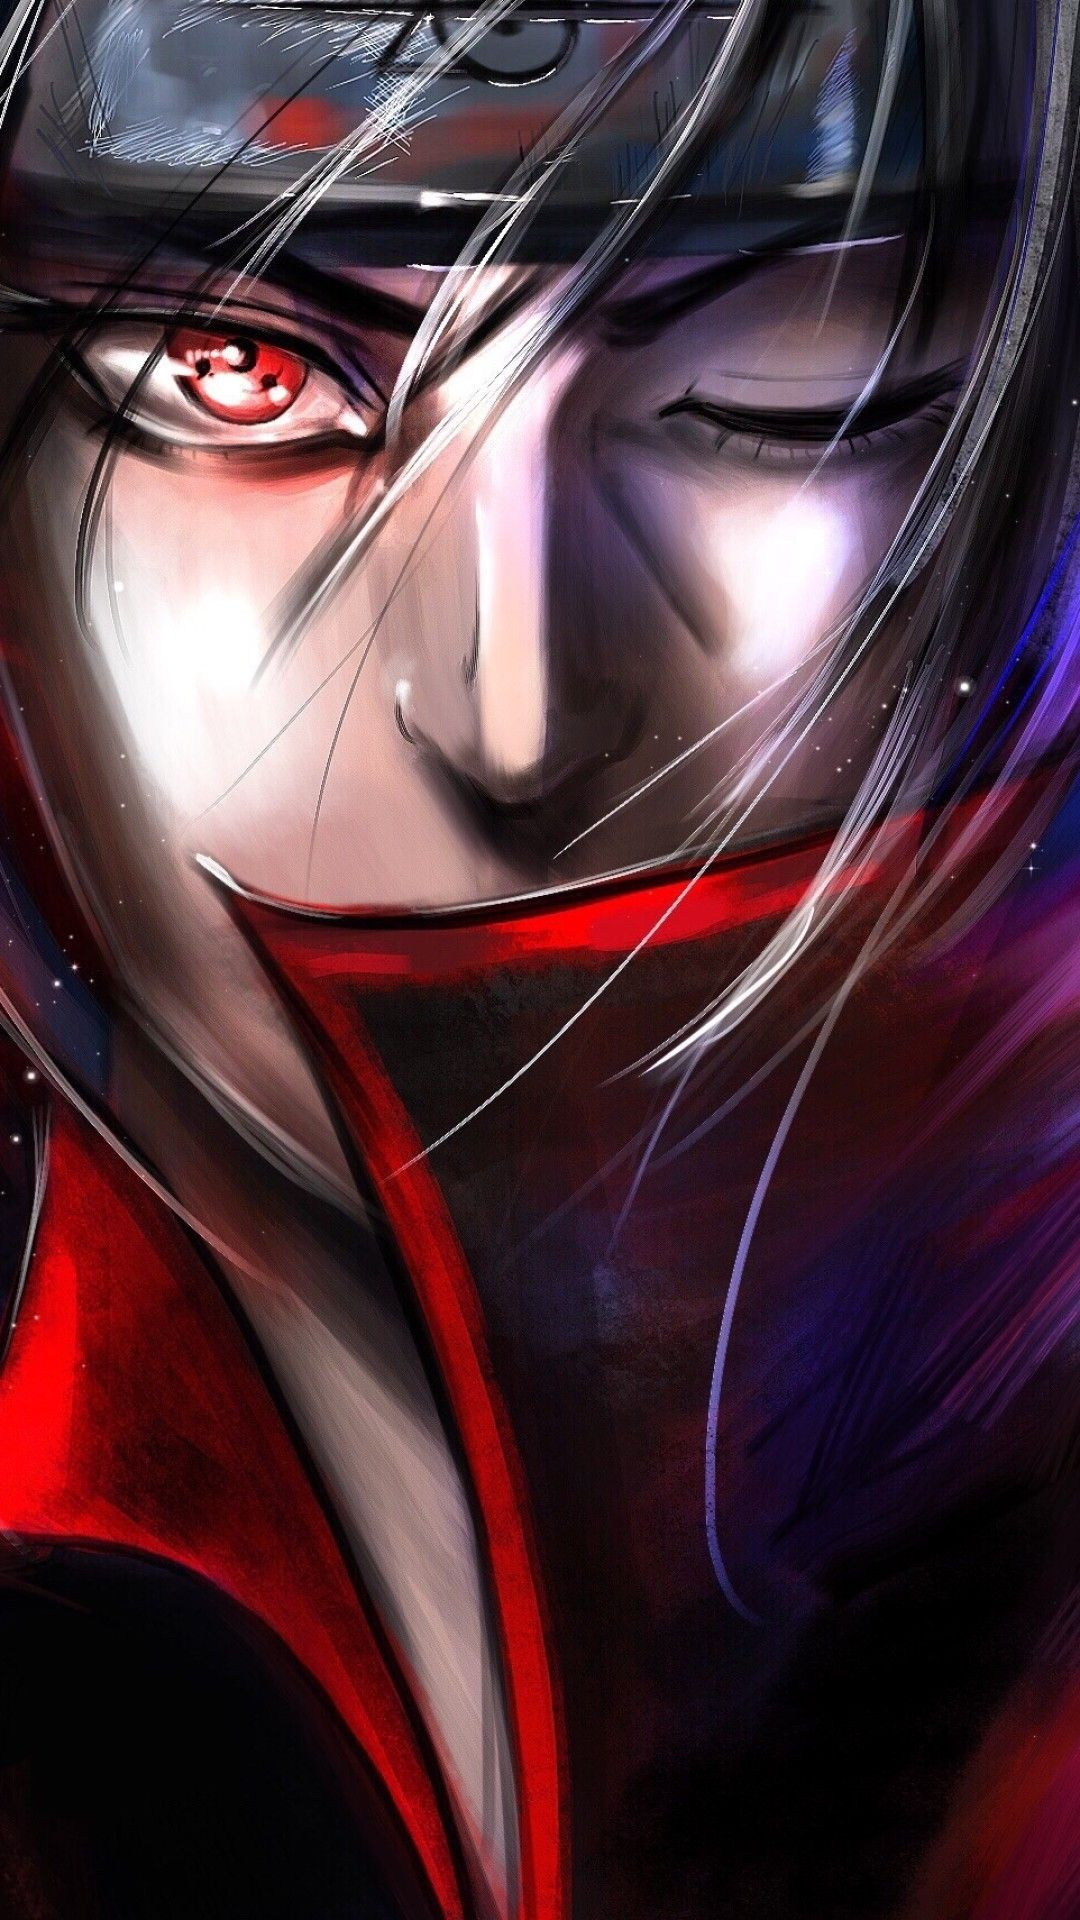 Wallpaper Phone Itachi Full Hd Itachi Uchiha Naruto Wallpaper Itachi